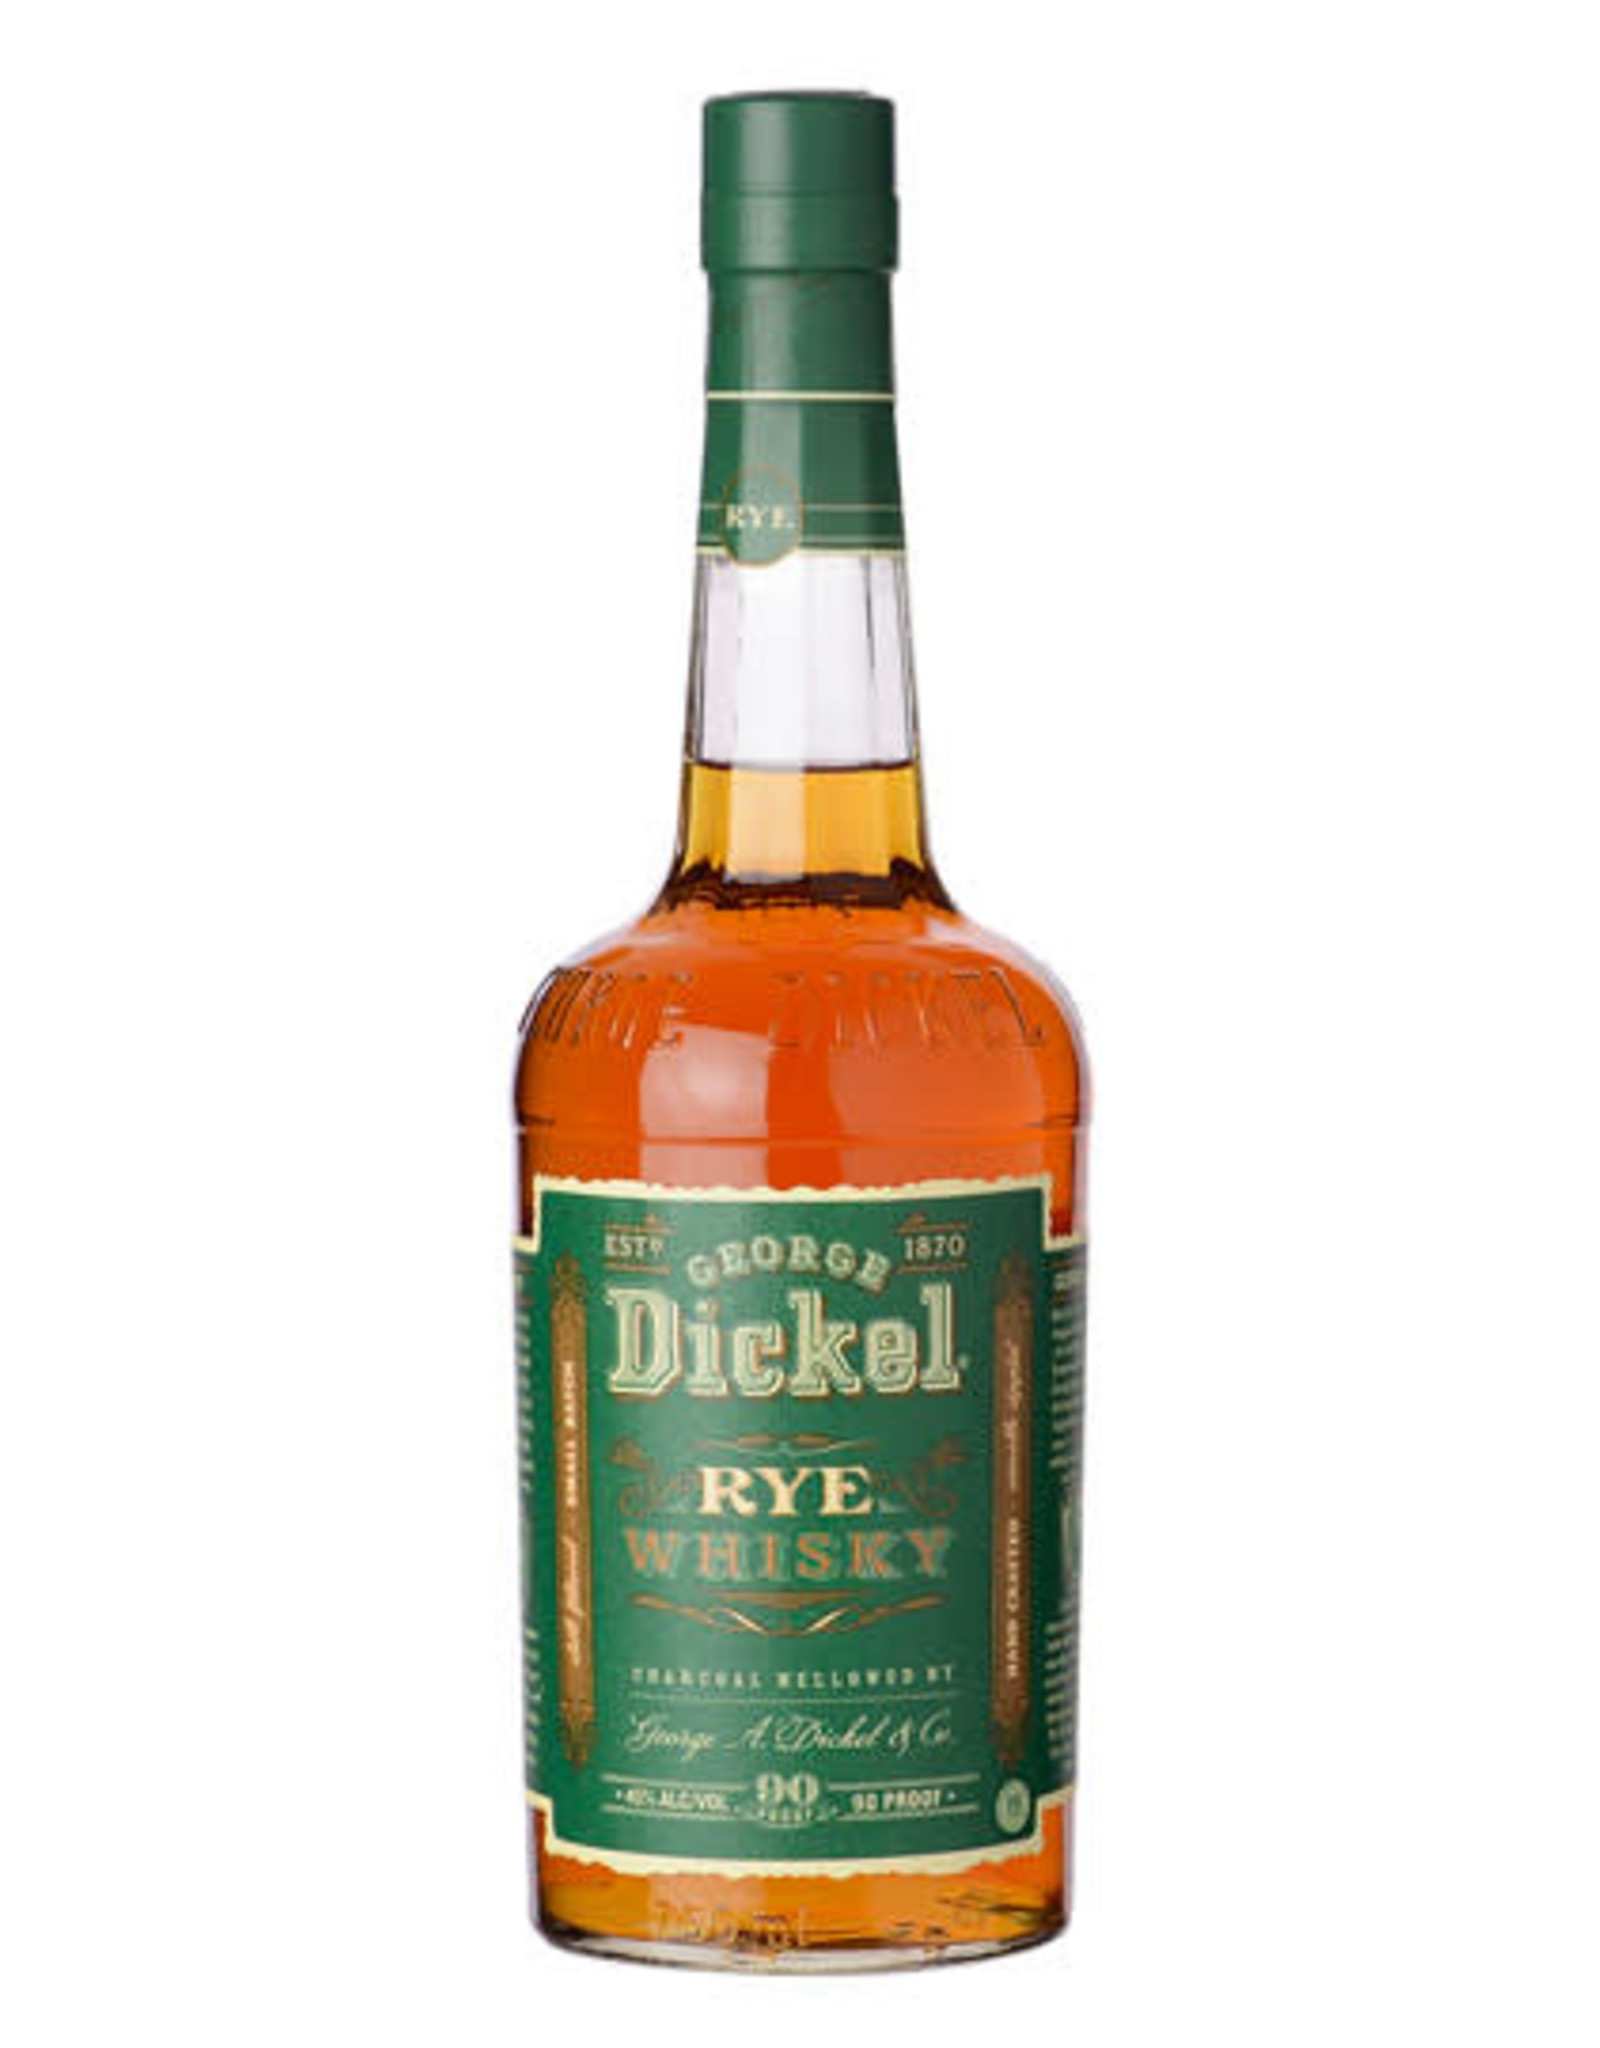 GEORGE DICKEL RYE WHISKEY 750ML